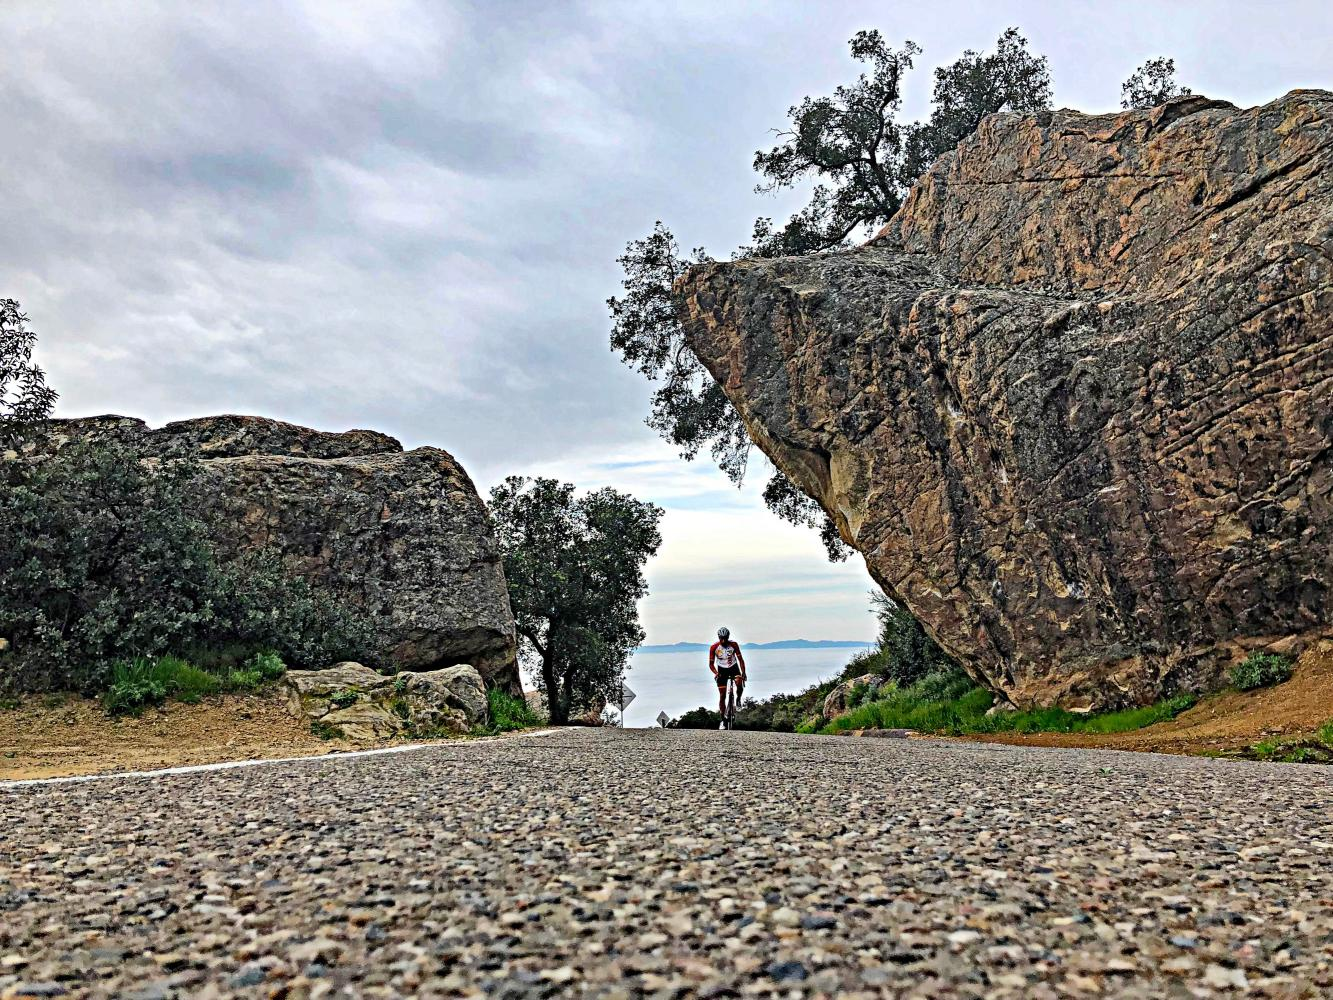 San Marcos - Painted Cave Bike Climb - PJAMM Cycling